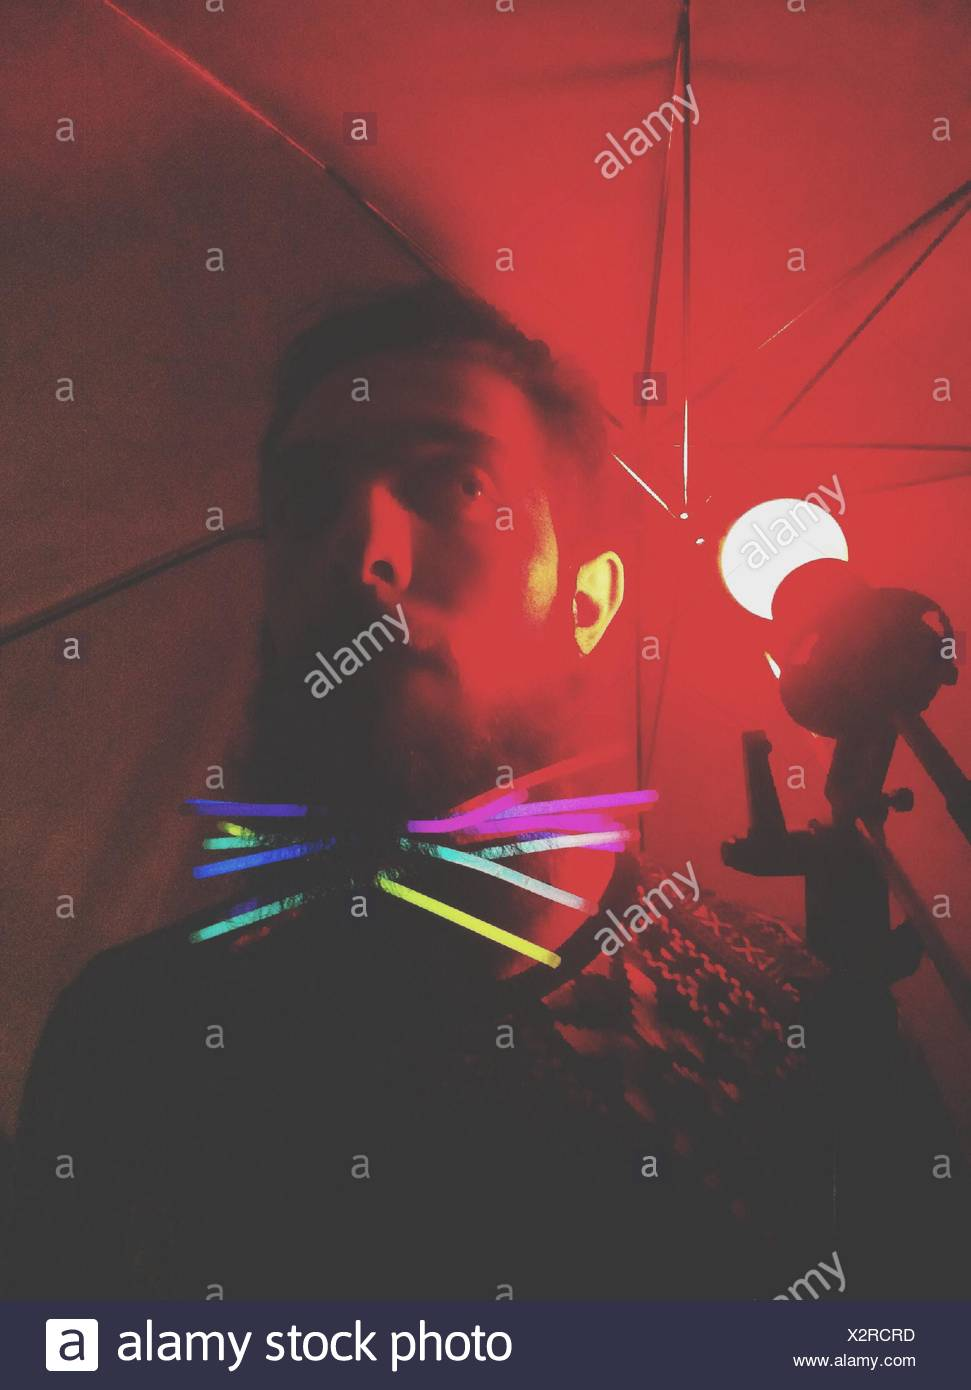 Low Angle View Of Man With Illuminated Colorful Lighting Equipment Standing Under Umbrella - Stock Image